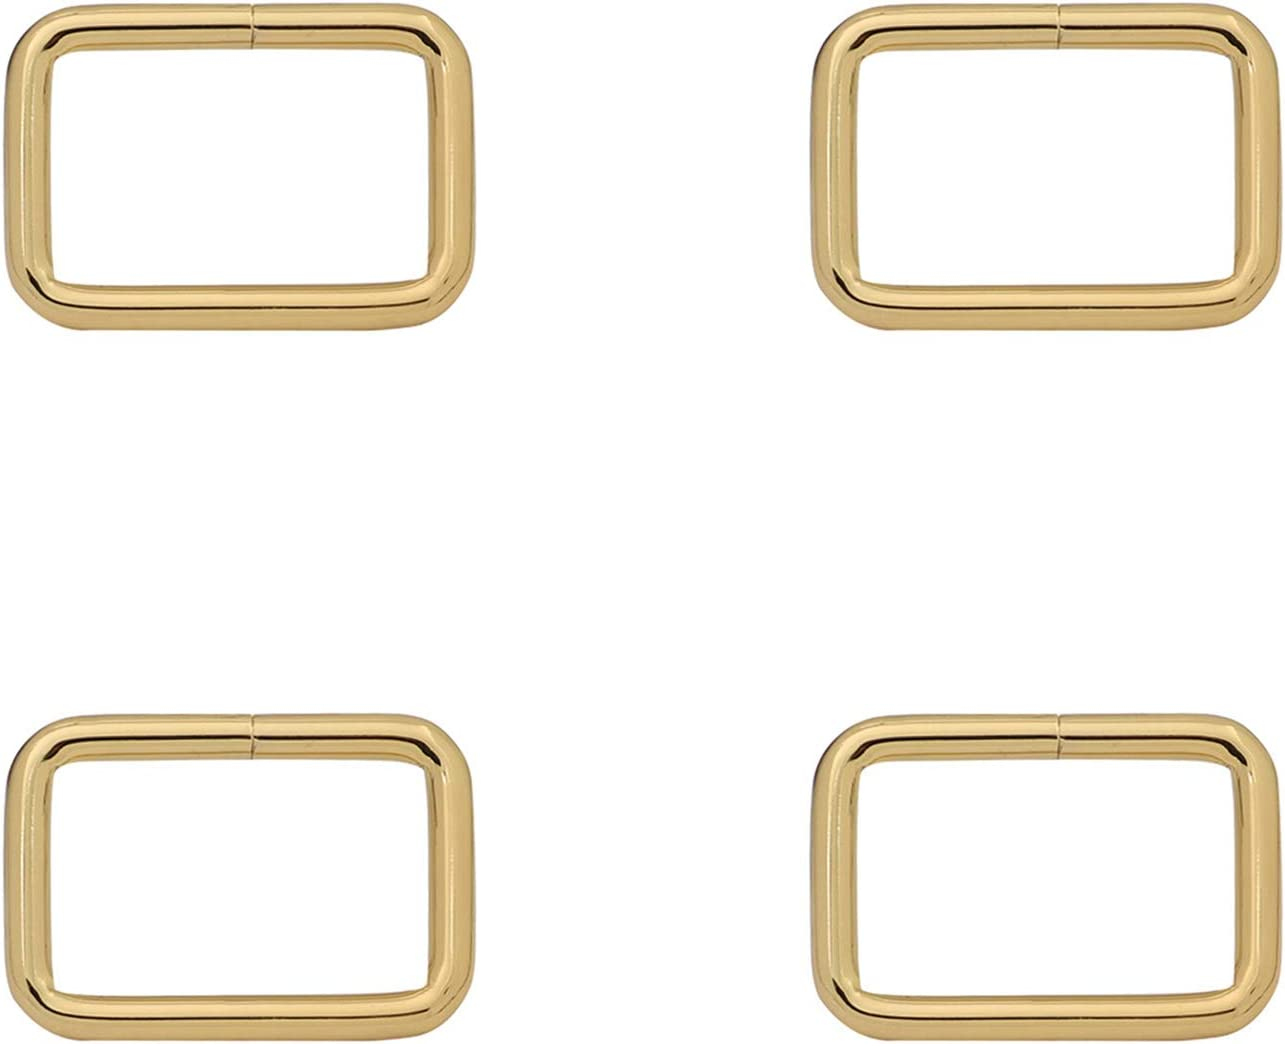 BIKICOCO Rectangle Buckle Ring Metal Non Welded 1.25x0.8 Inch Inside Dimensions Gold Pack of 10